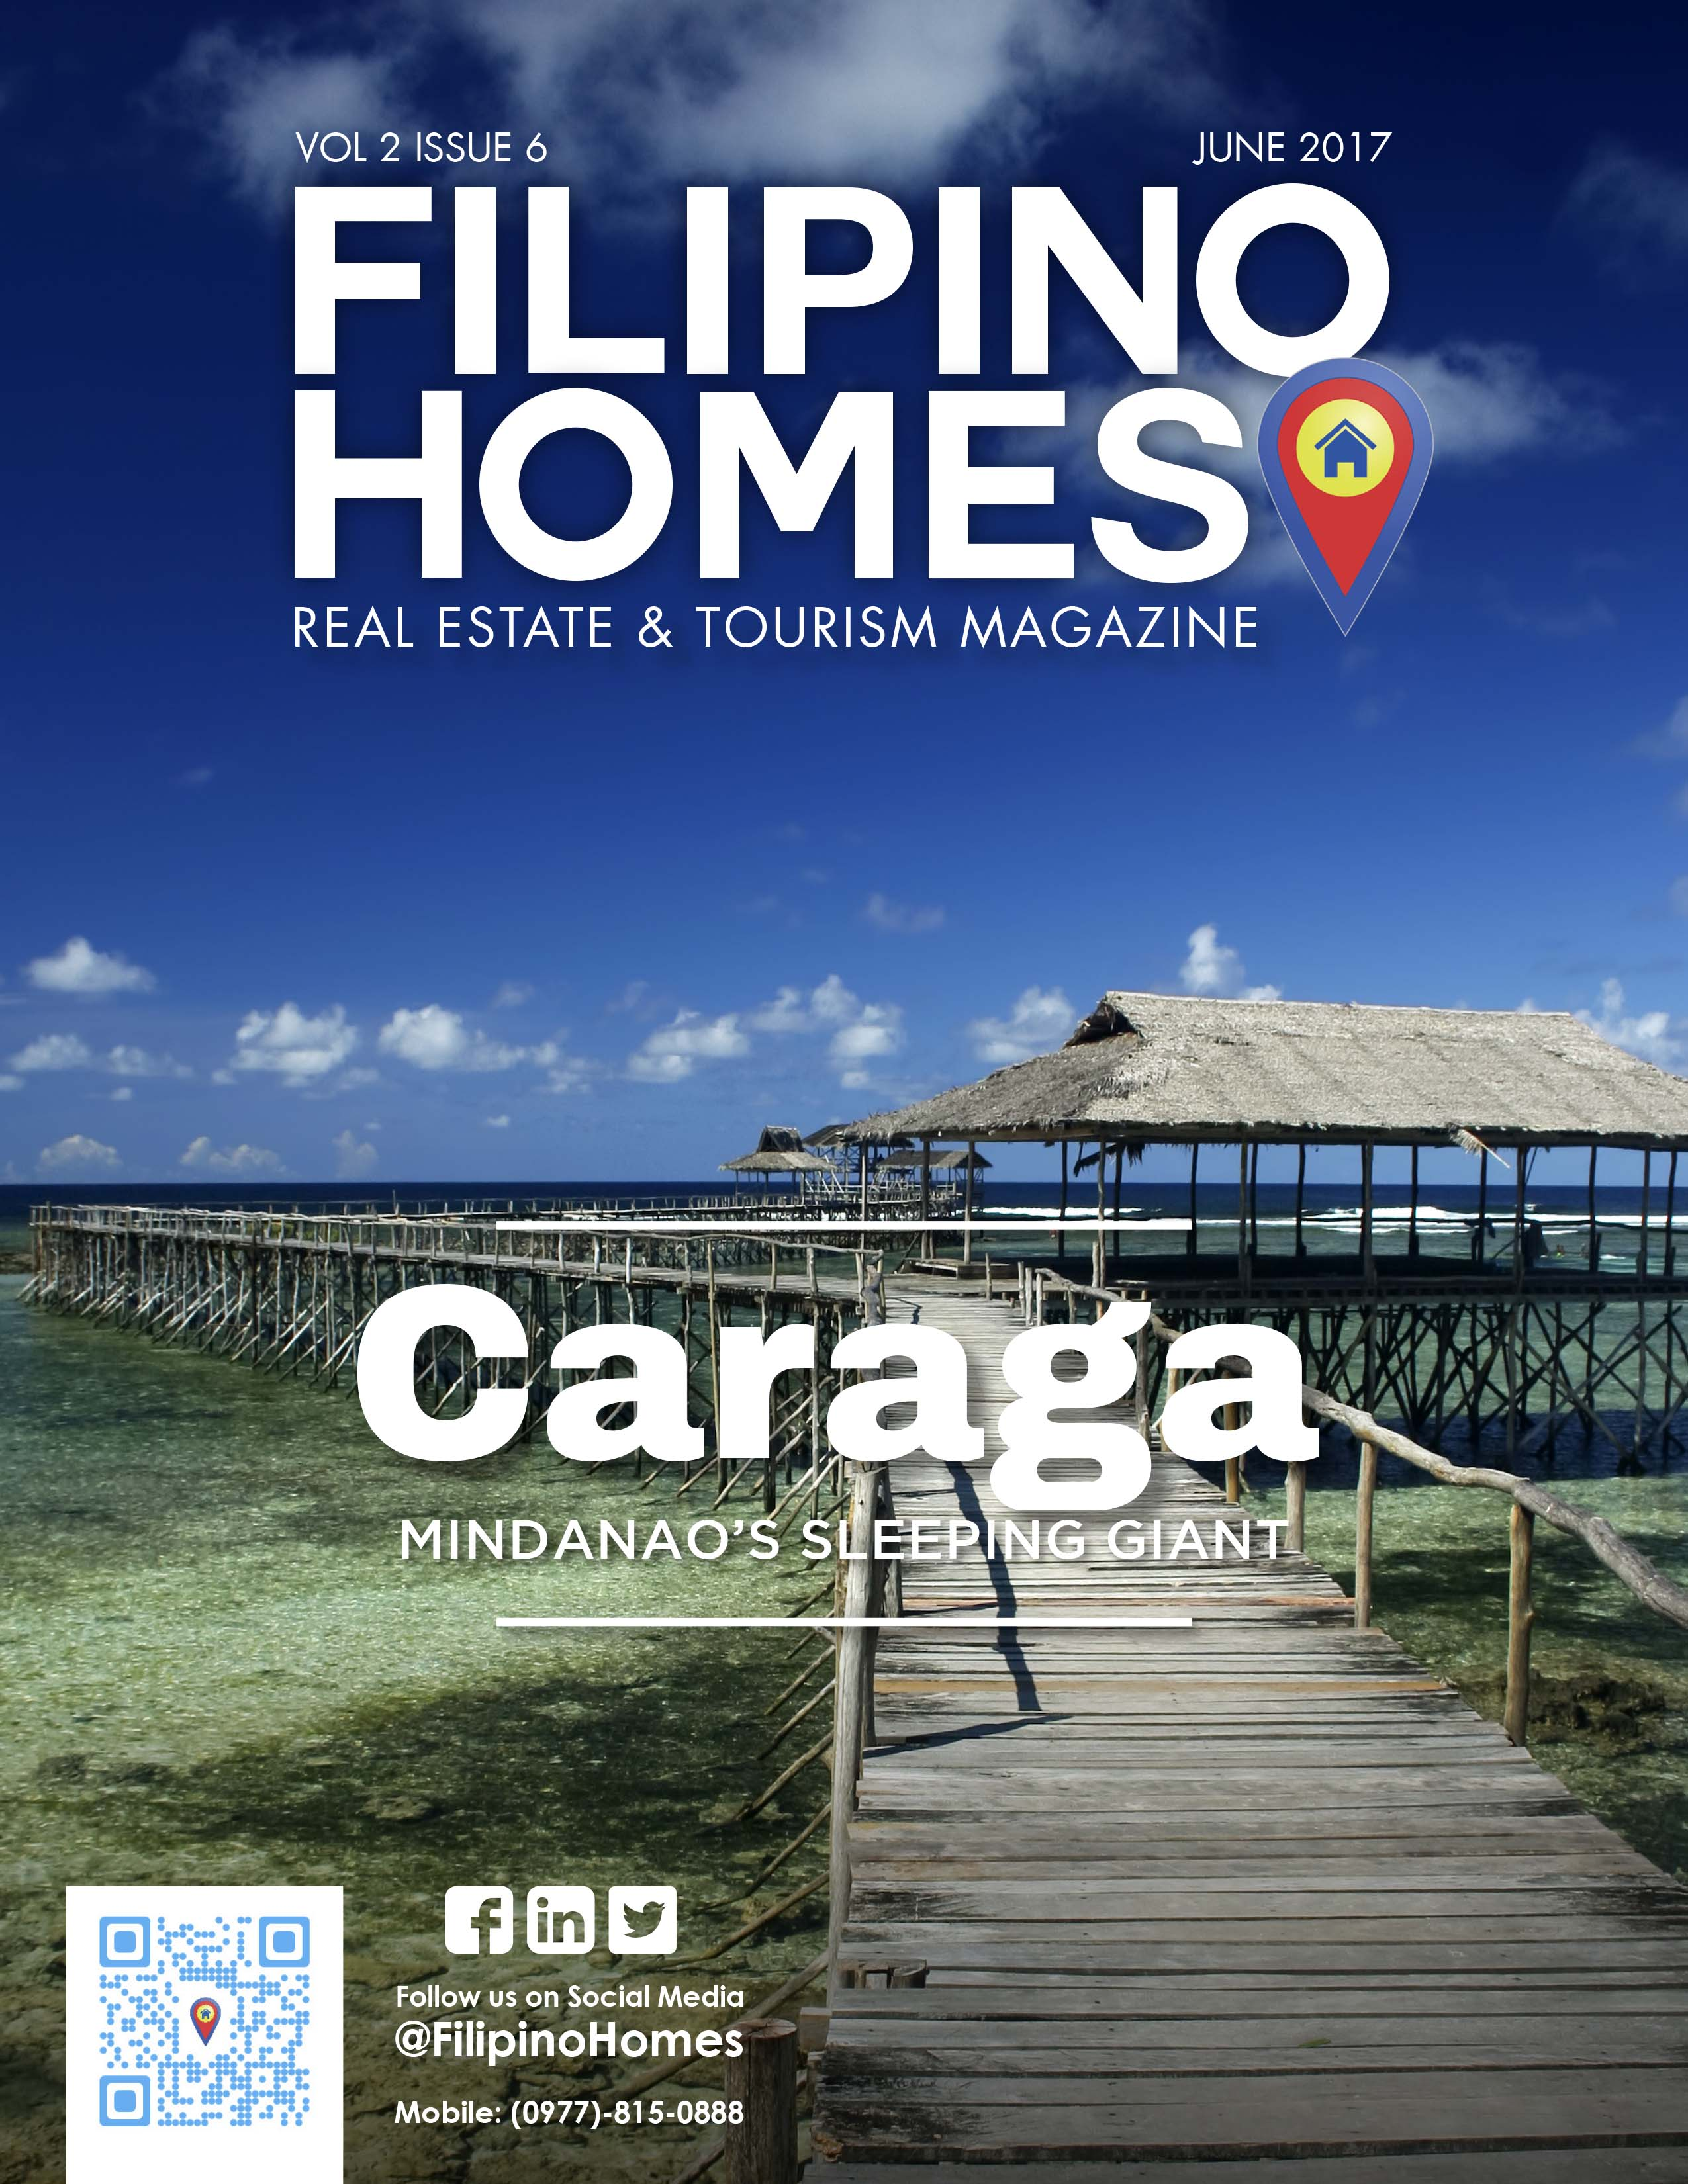 Filipino Homes Real Estate & Tourism Magazine Vol 2 ISSUE 6